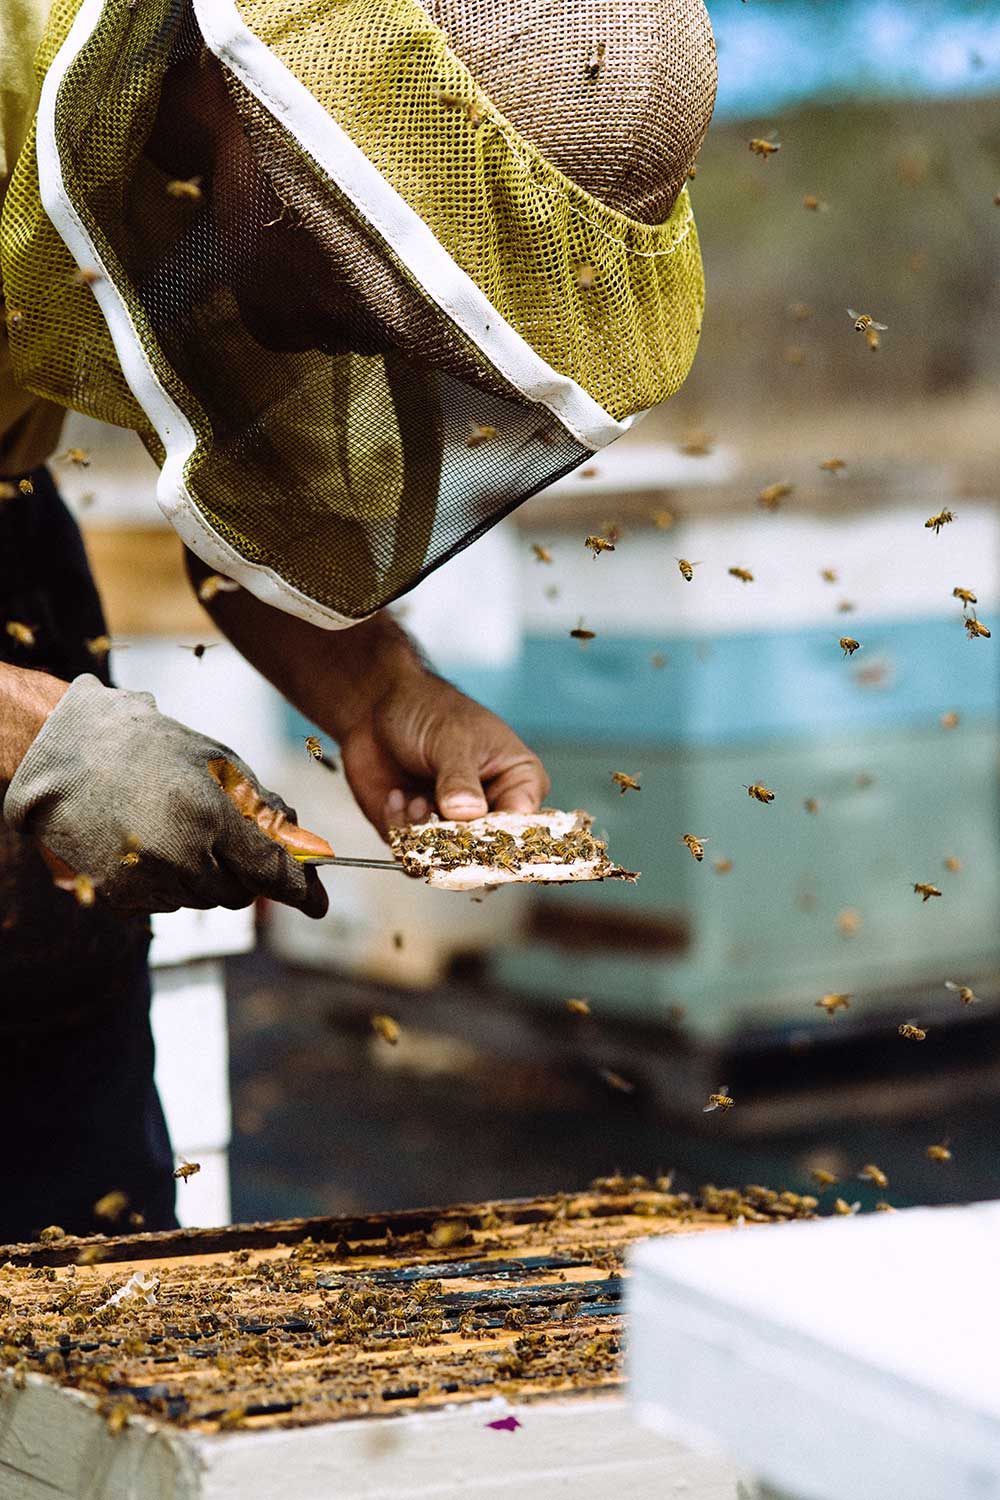 Man in a protective helmet with bees flying around him carves out a piece of honeycomb